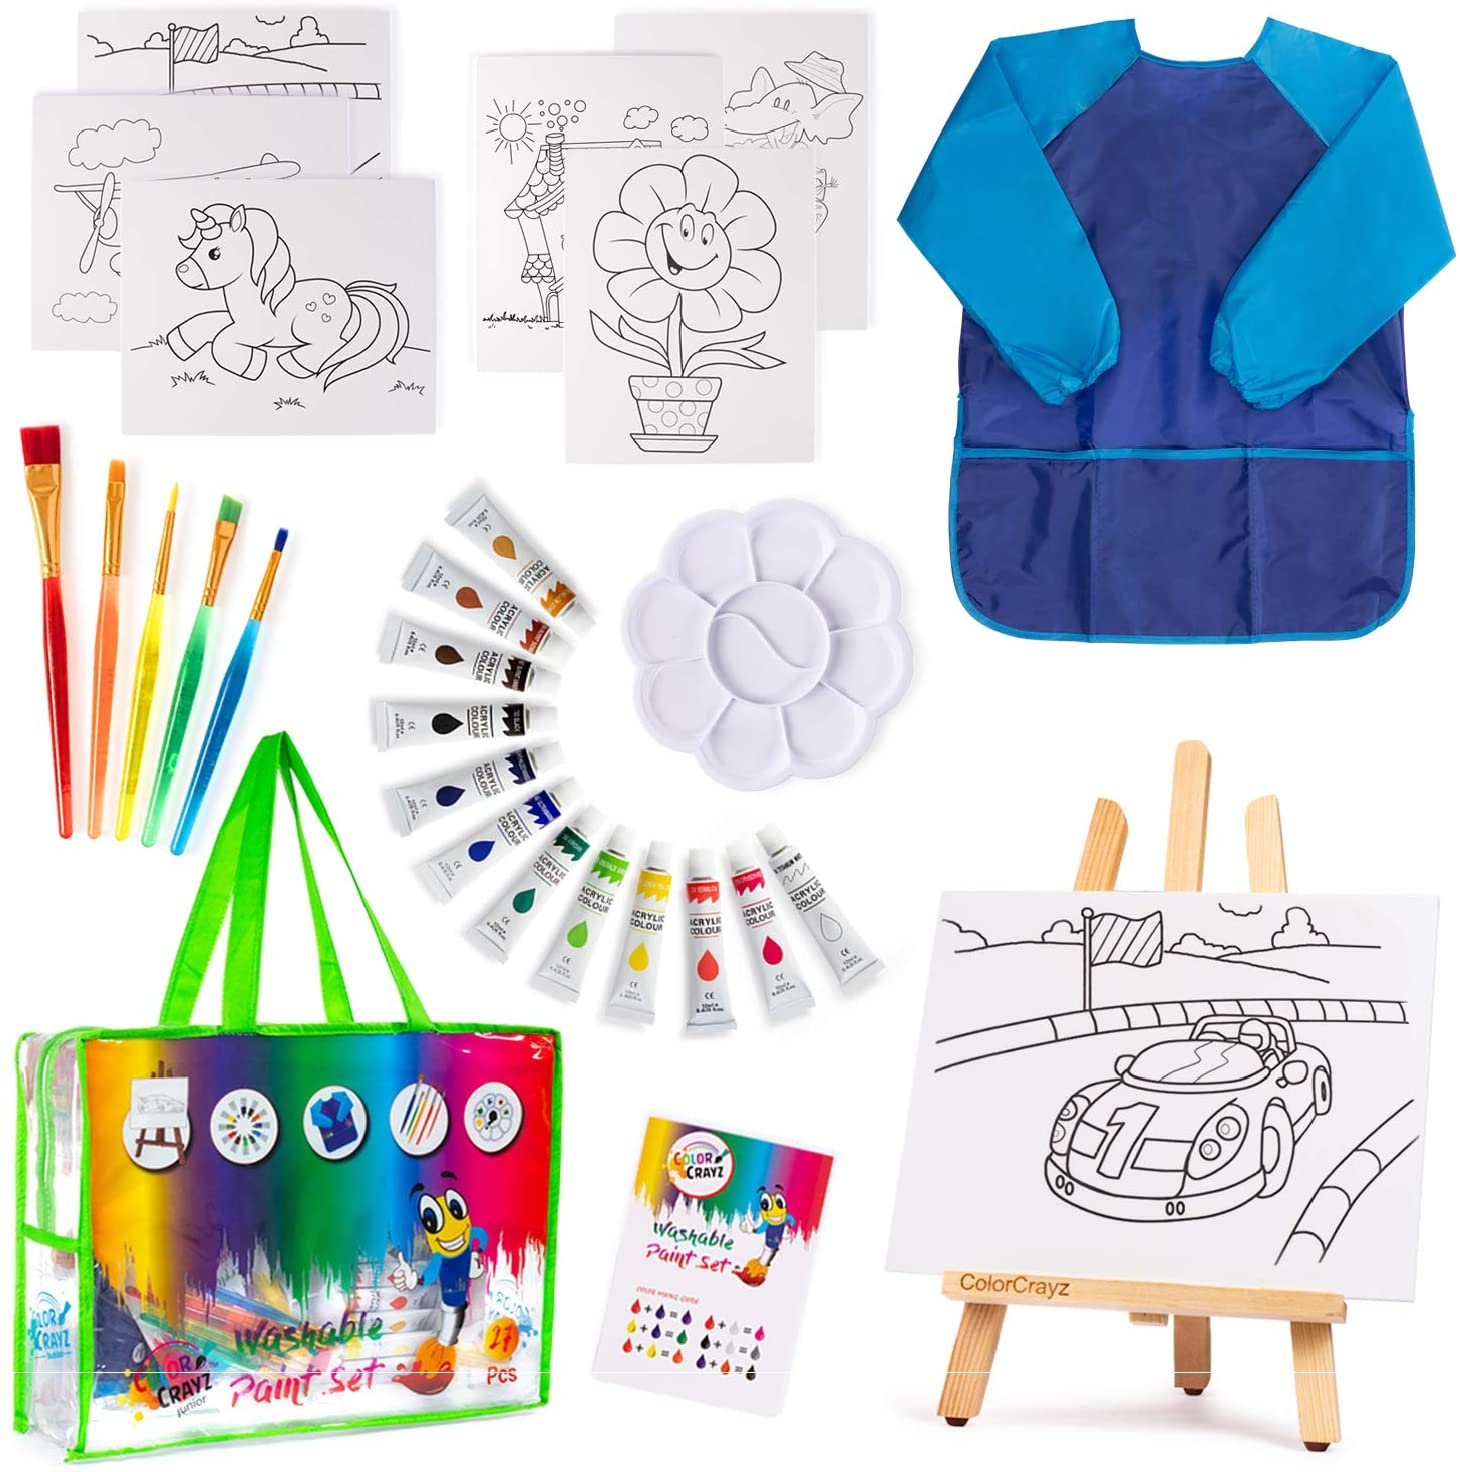 Best Paint Sets for Kids Art Projects and Crafts – ARTnews.com